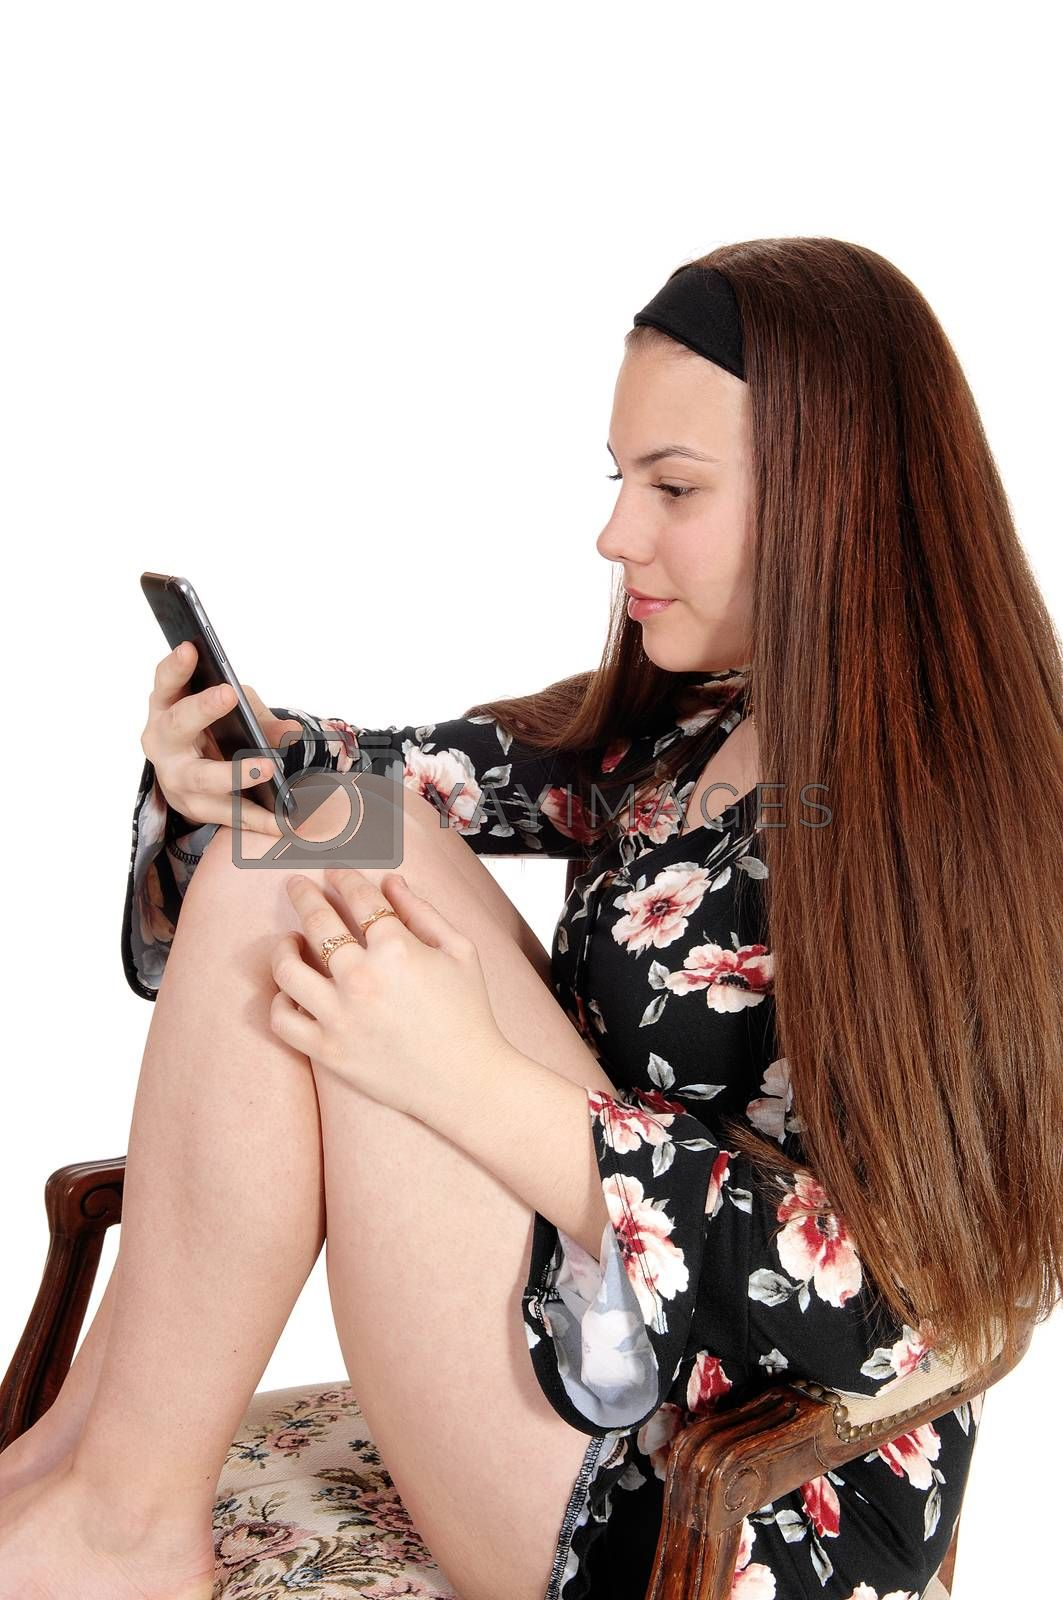 Pretty teen girl sitting on a chair looking at her cellphone by feierabend